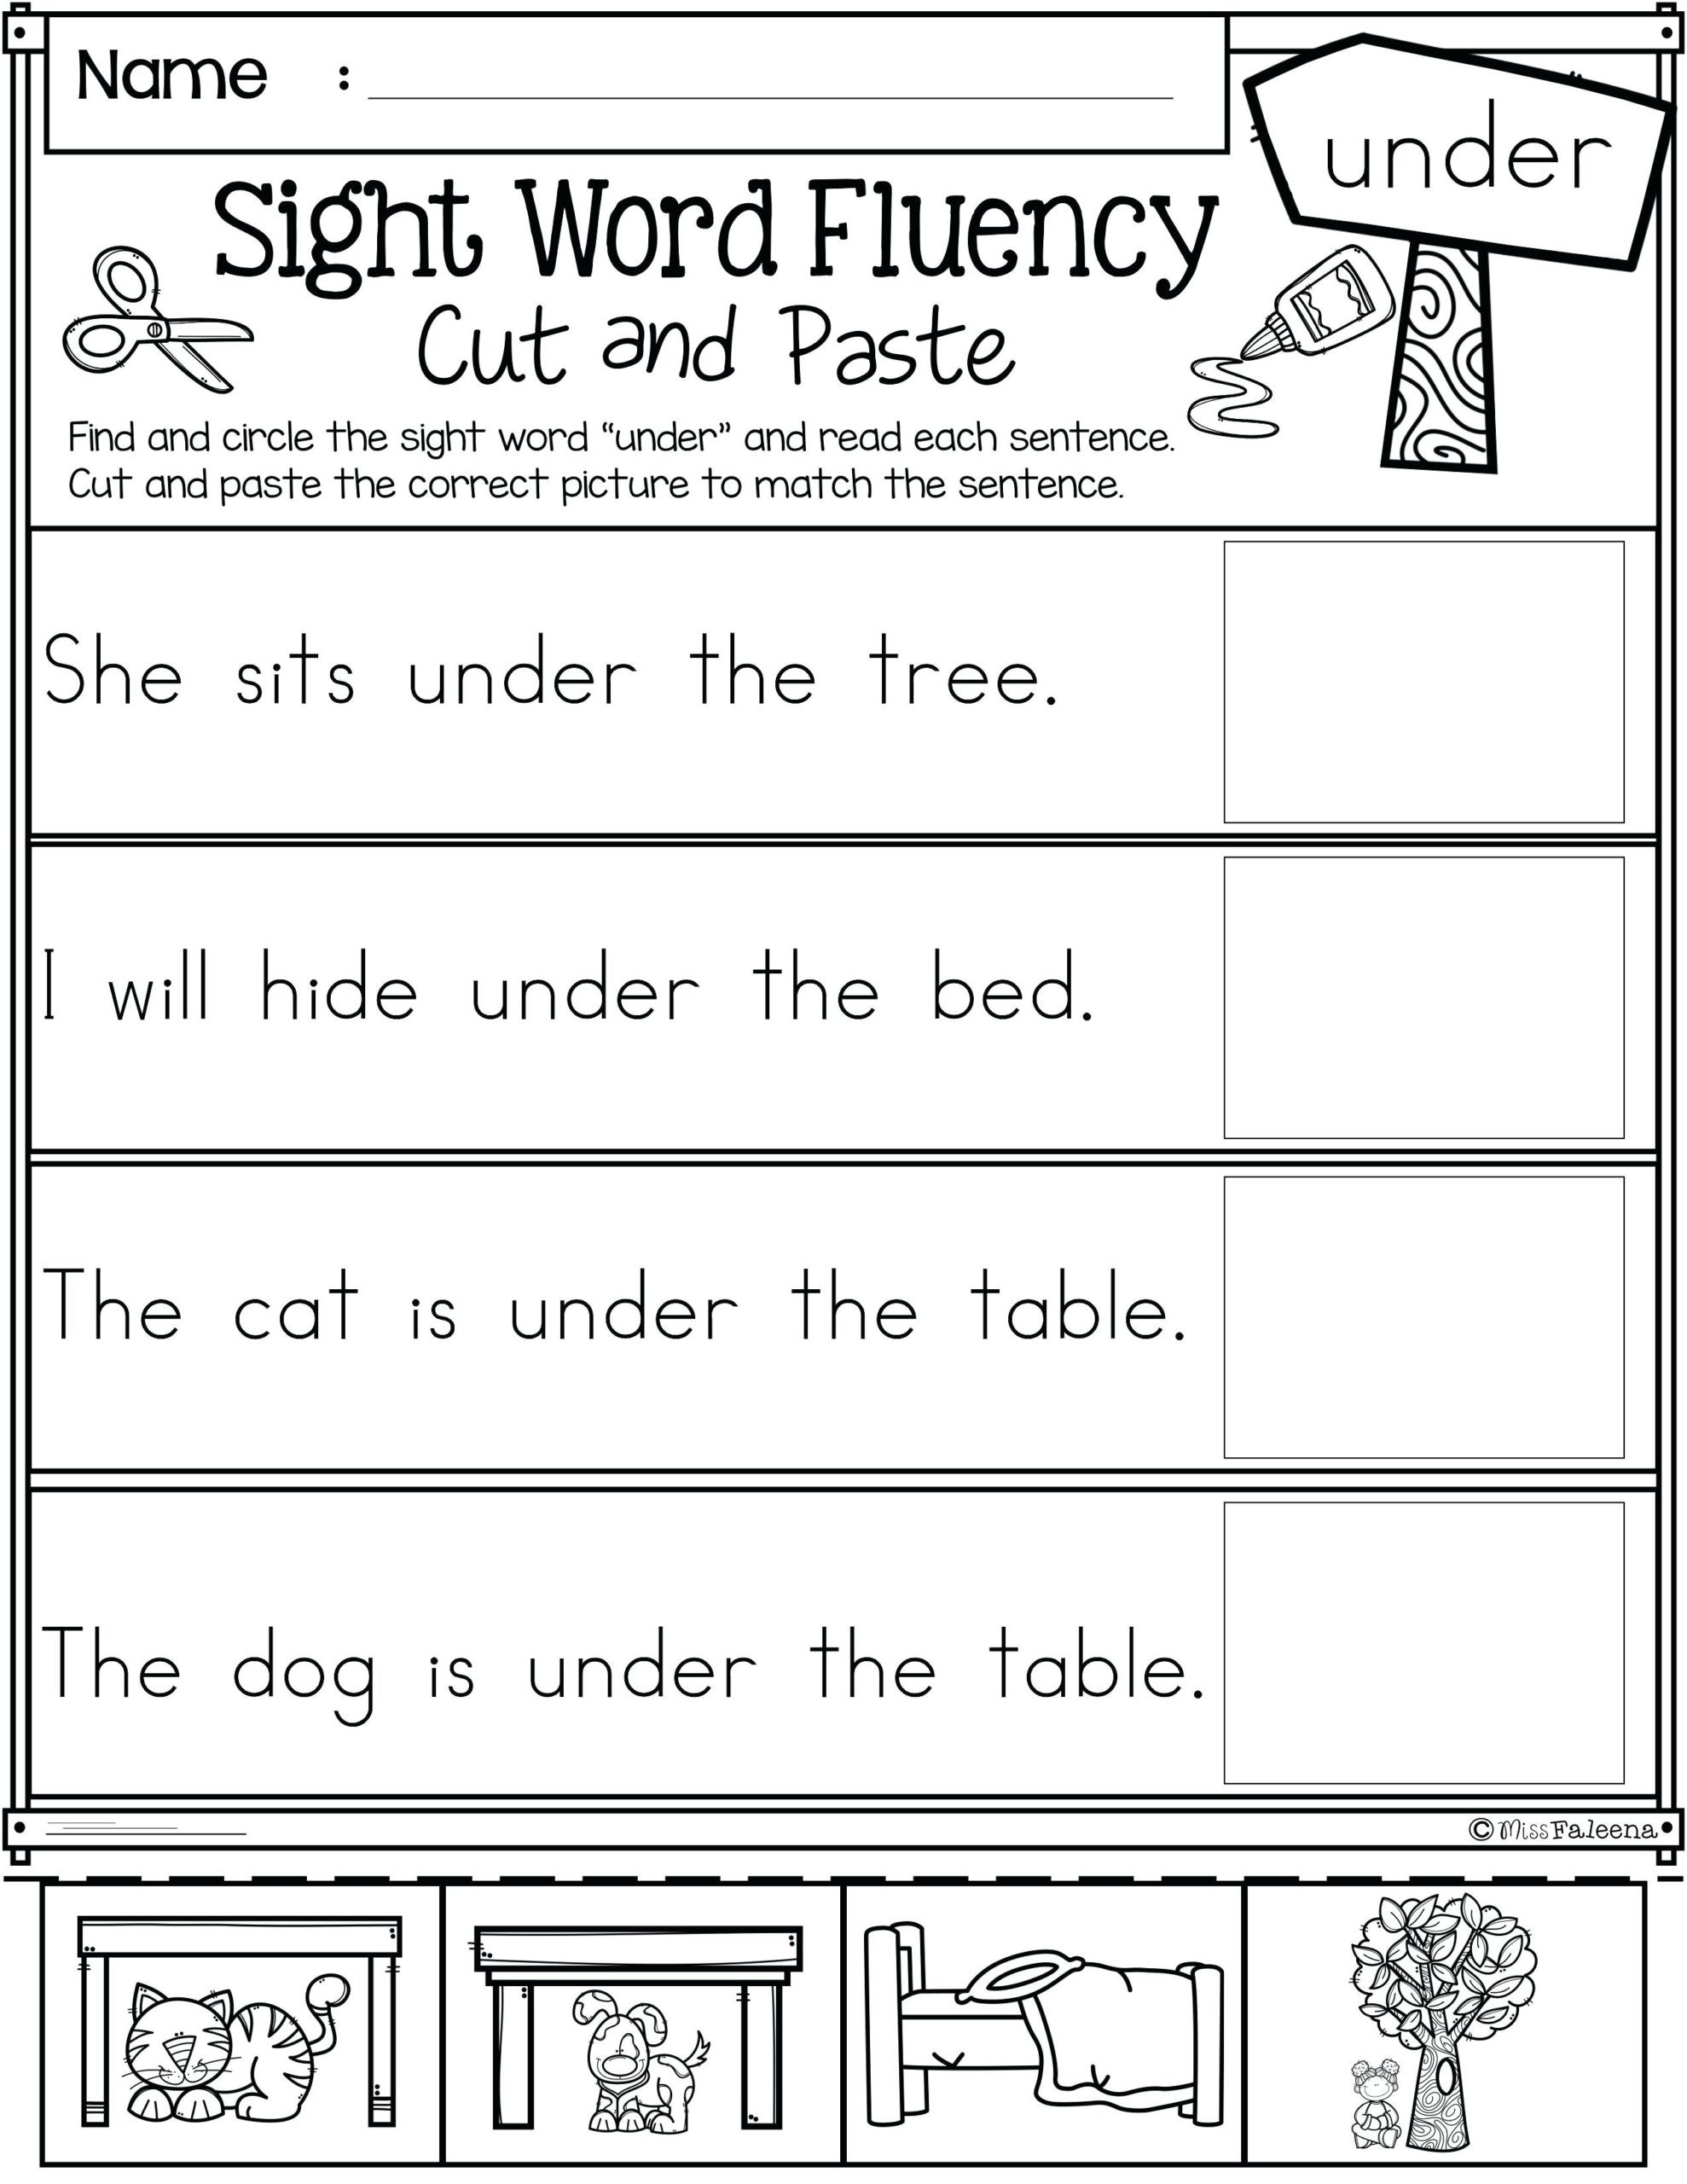 Free Printable Religious Worksheets Math Worksheet Reading Level toddler Preschool Non